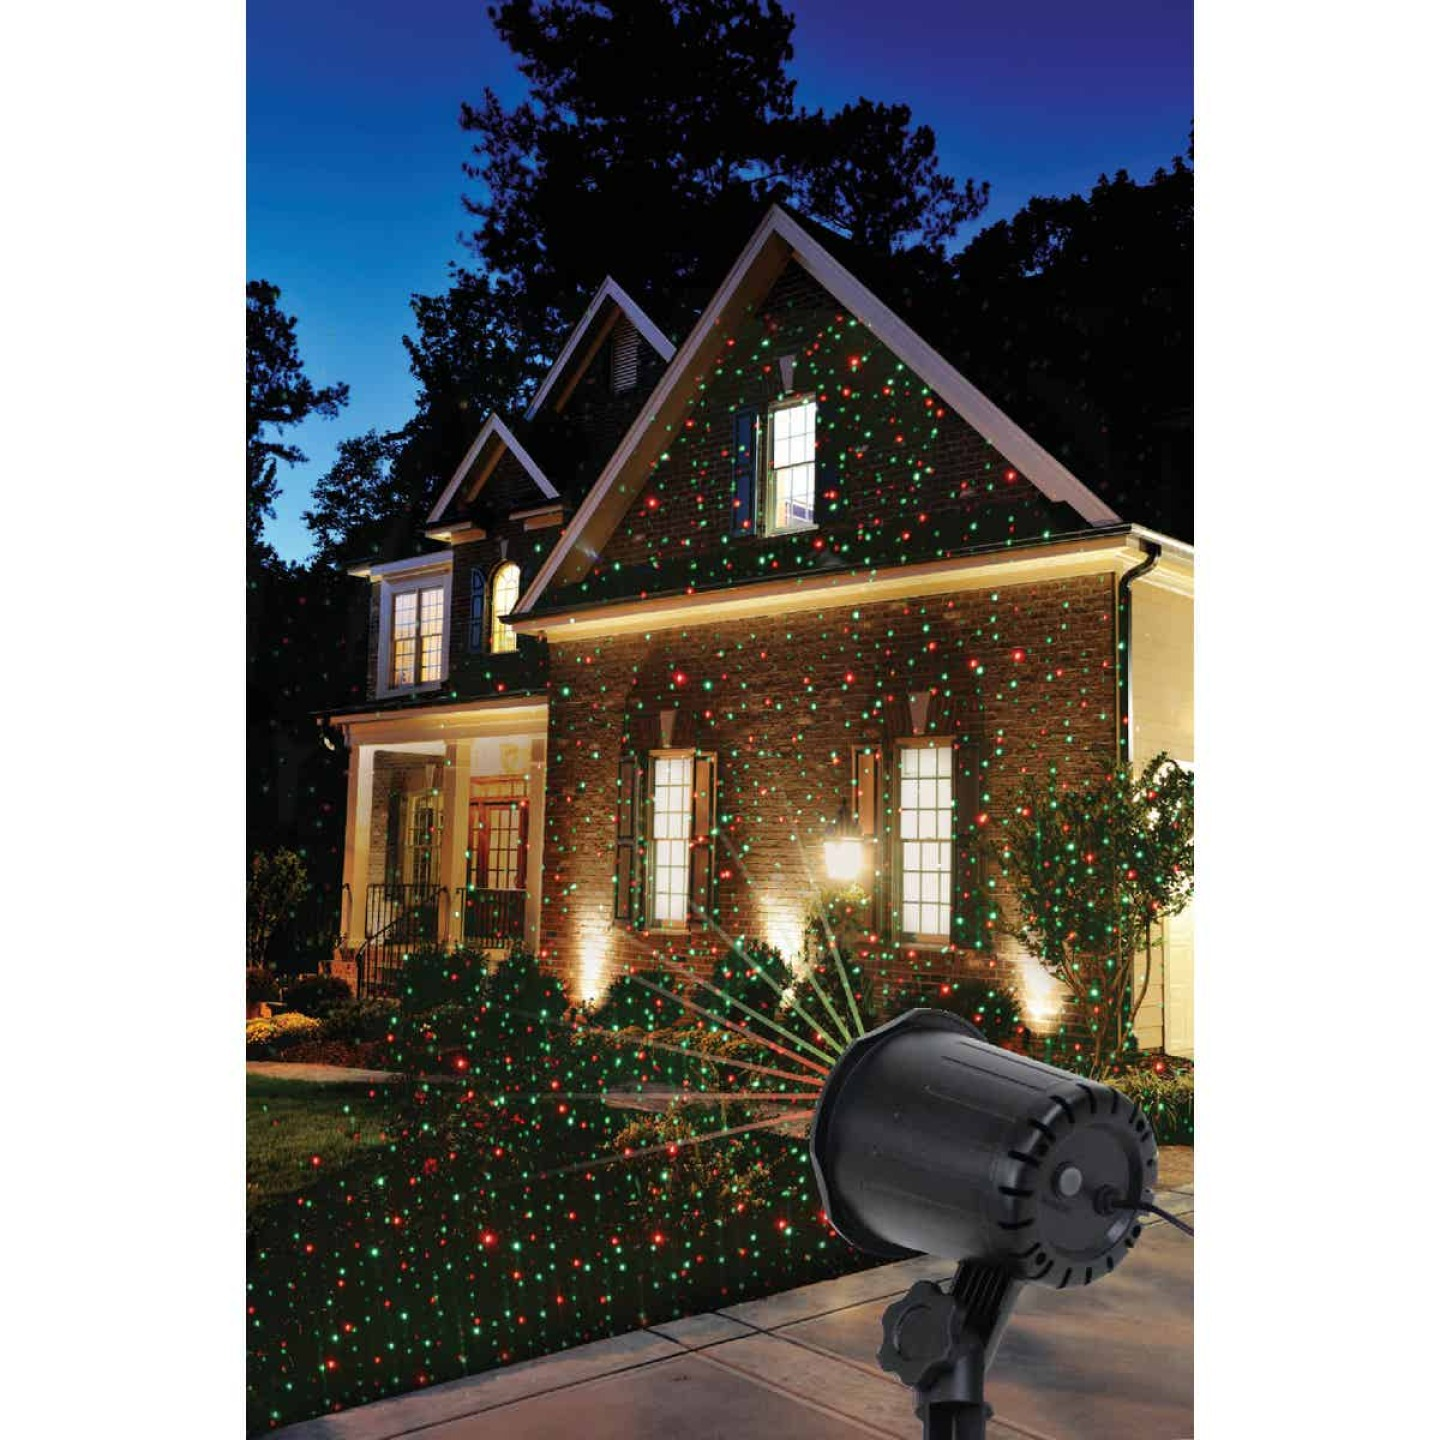 Prime Wire & Cable LED 5W Holiday Landscape Laser Light Projector Image 4